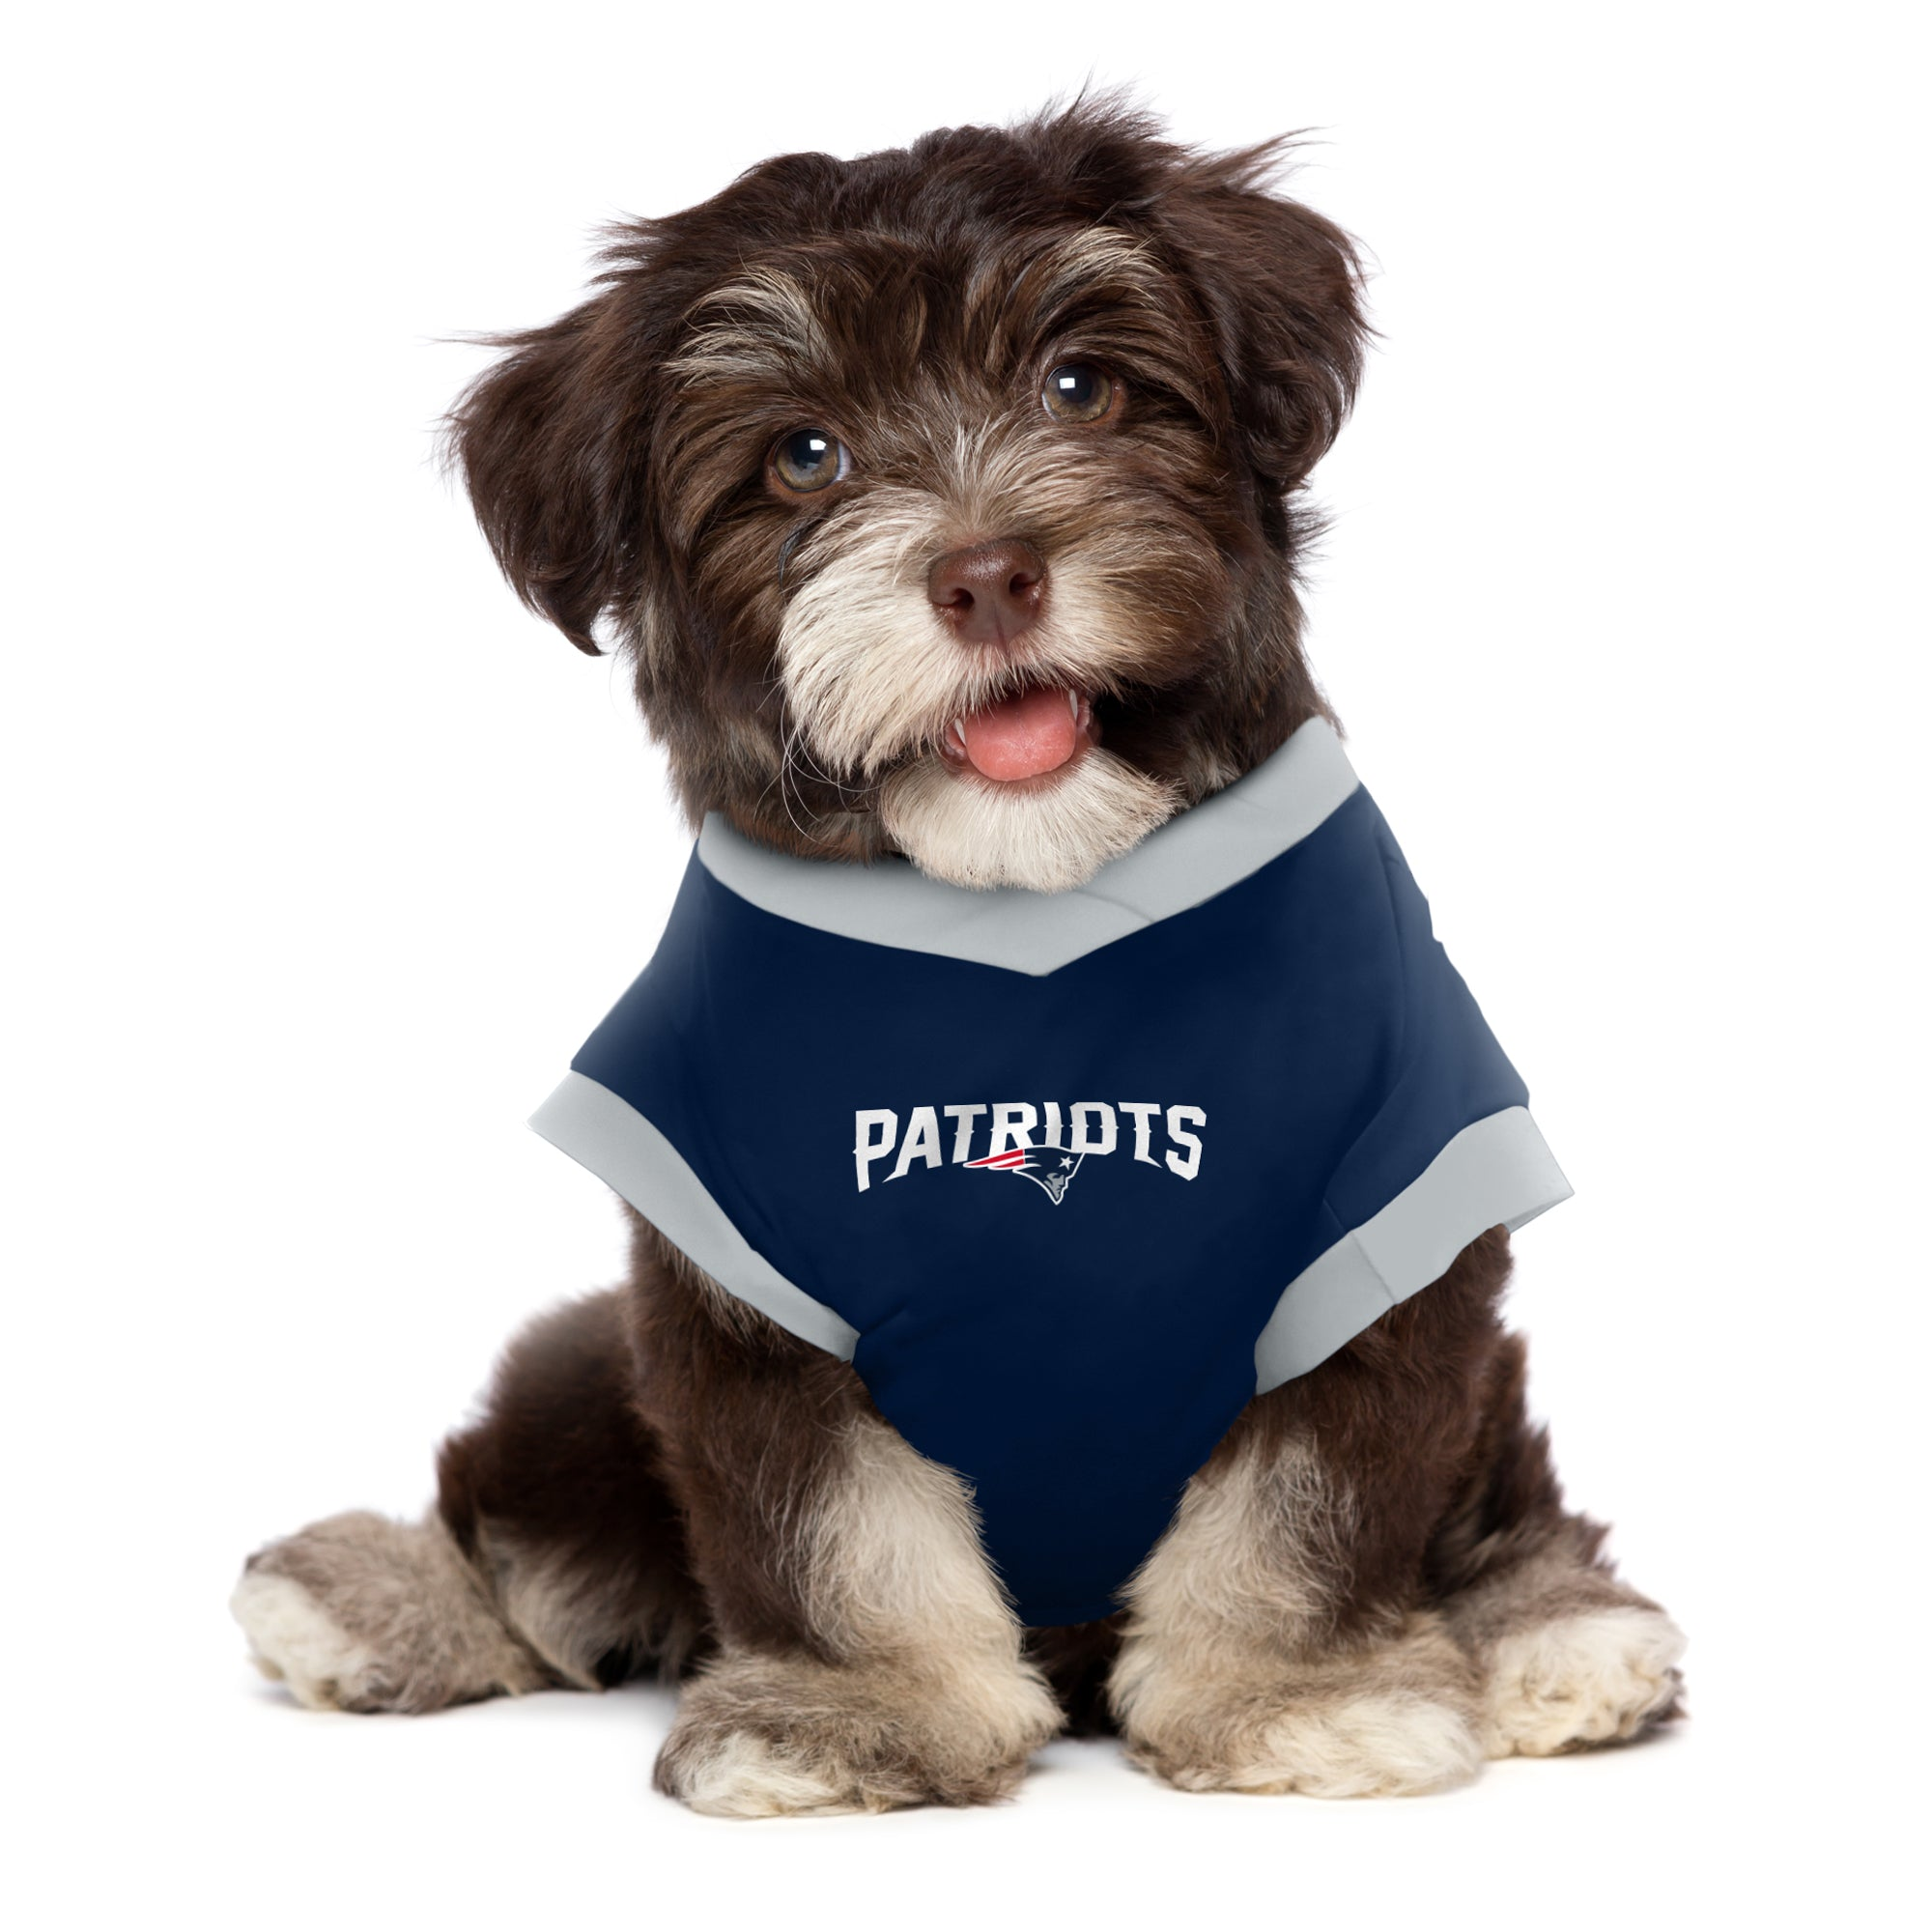 Patriots Hoodie For Dogs 769365f79